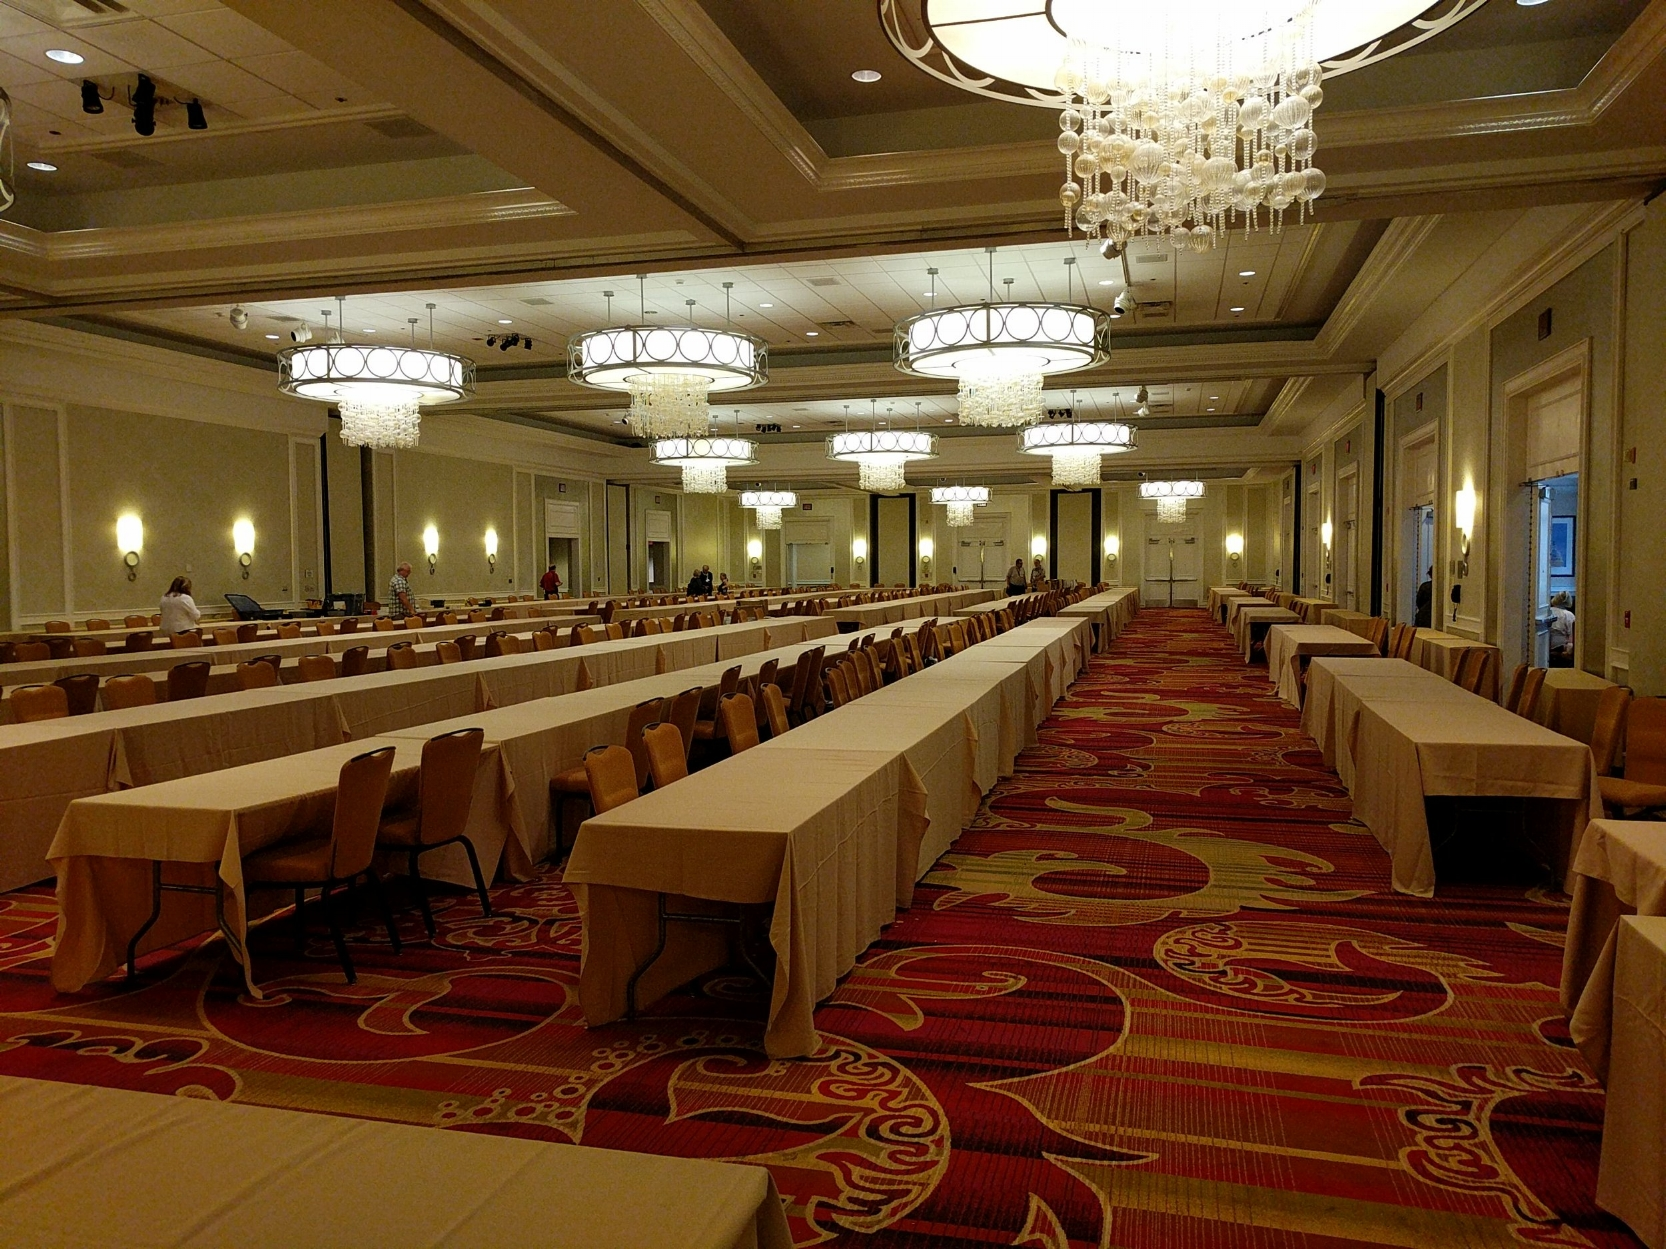 Between today and tomorrow, all of these tables will be filled with pens! And this is just one ballroom...